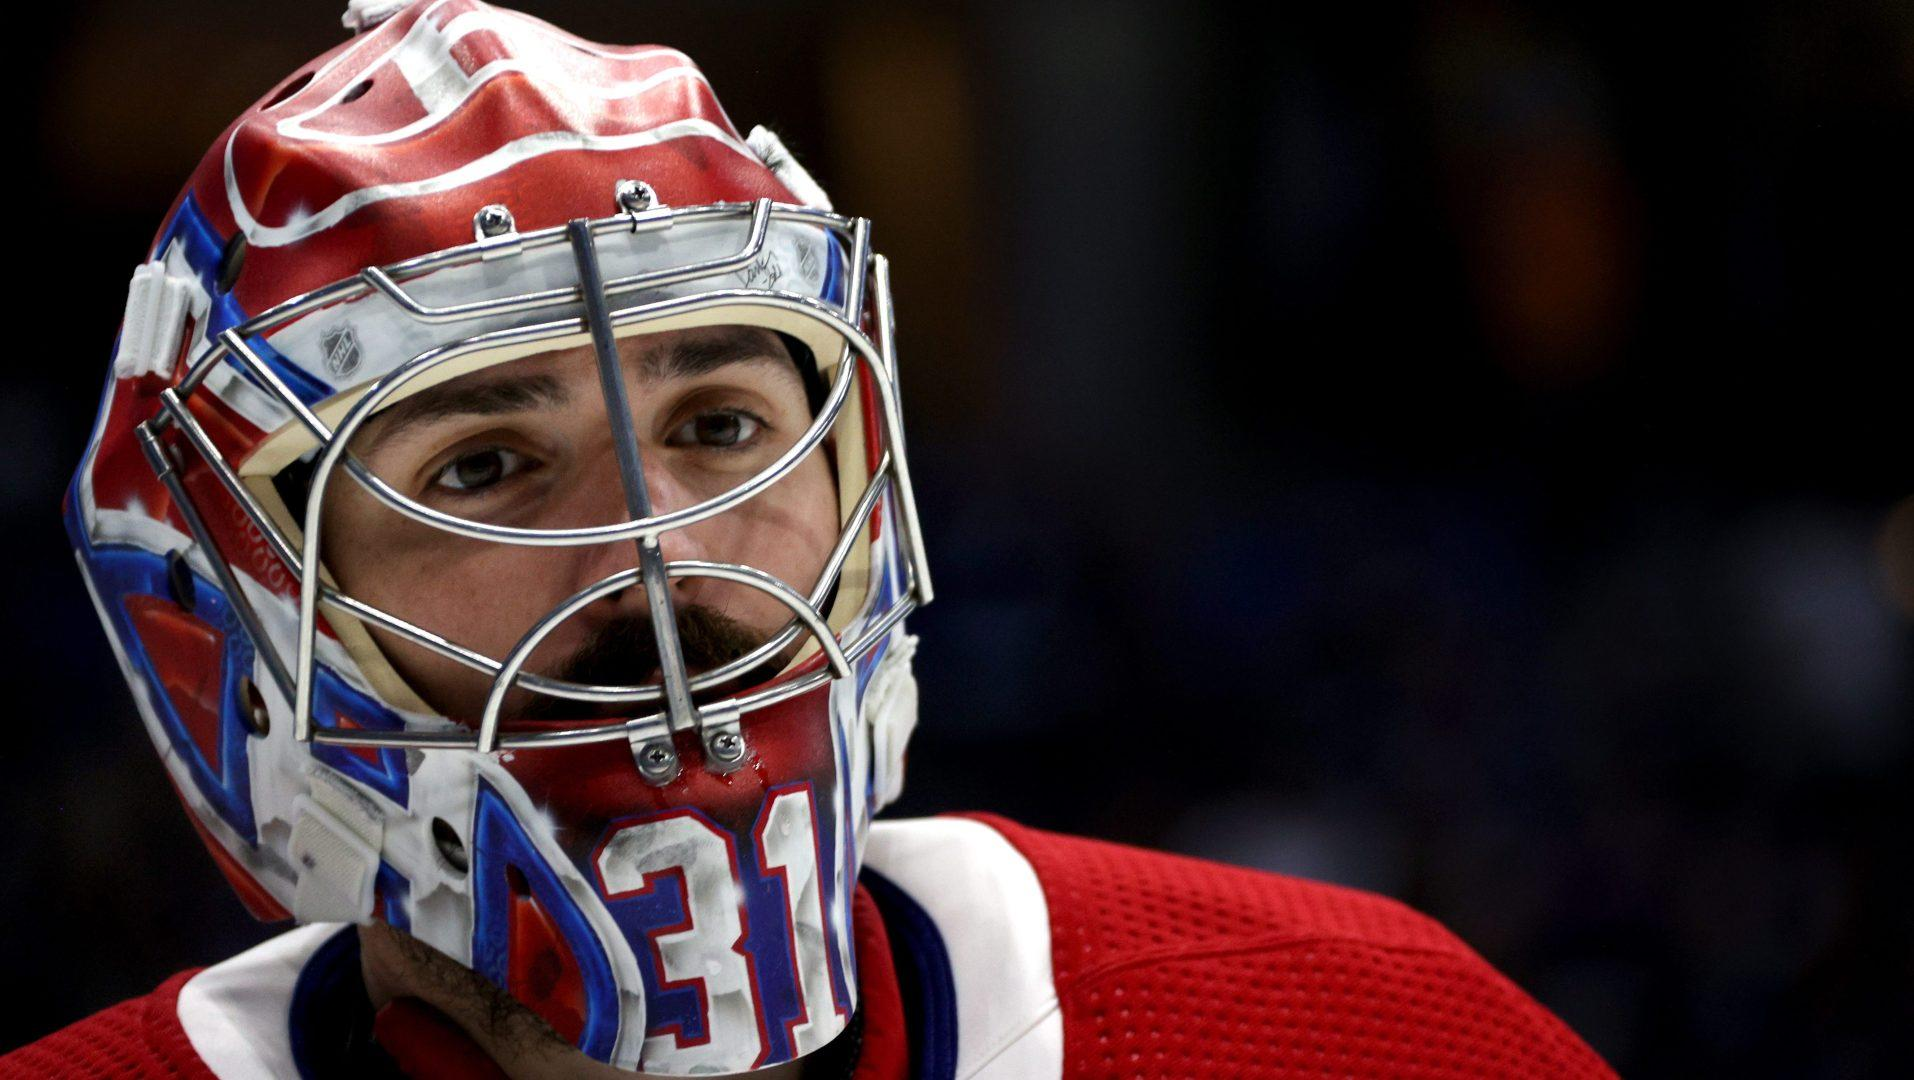 Picking Carey Price would be bold, risky (and chaotic) move for Kraken